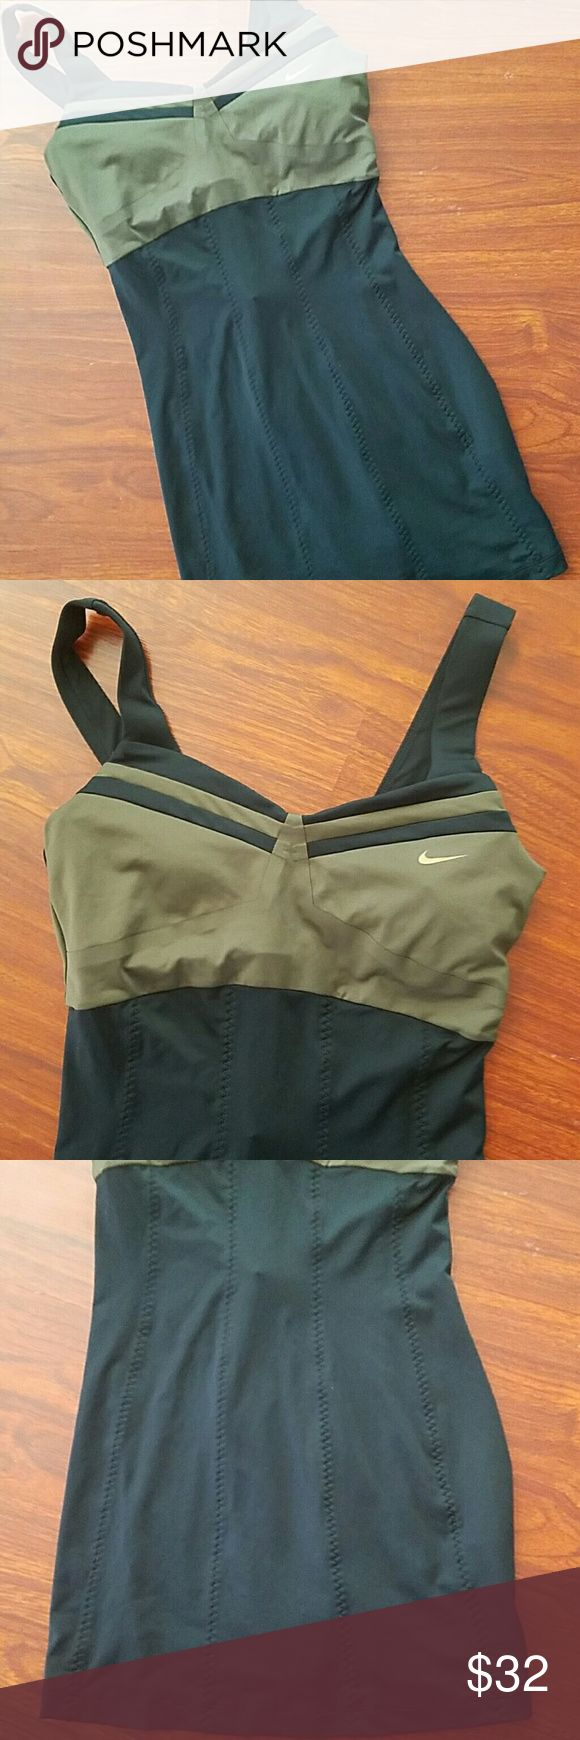 Like new Nike tennis dress workout size small has built in bra Nike Dresses